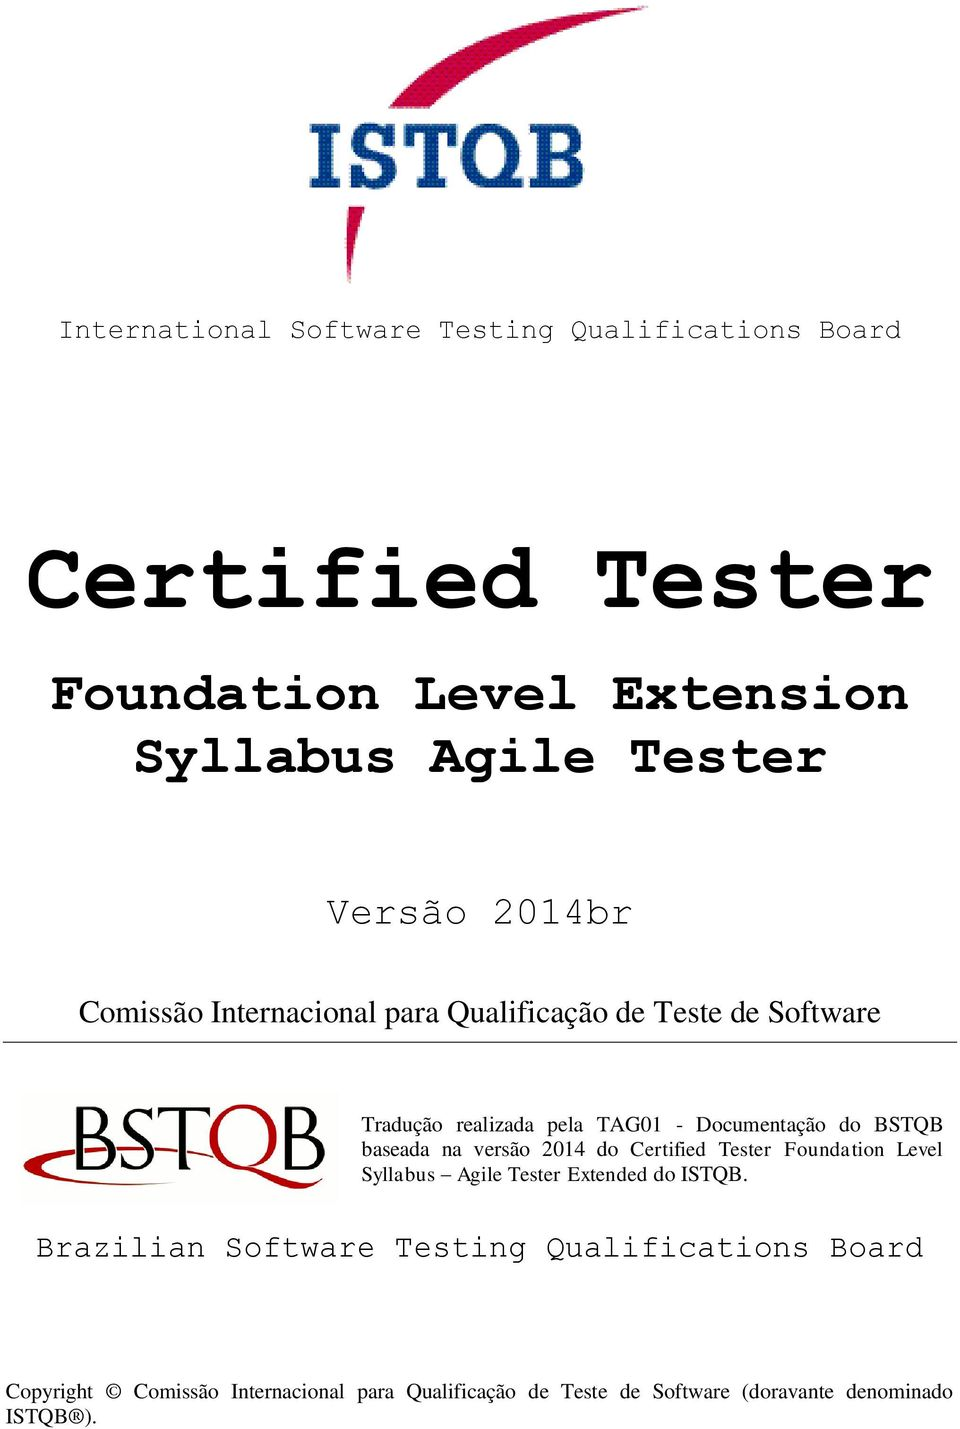 baseada na versão 2014 do Certified Tester Foundation Level Syllabus Agile Tester Extended do ISTQB.